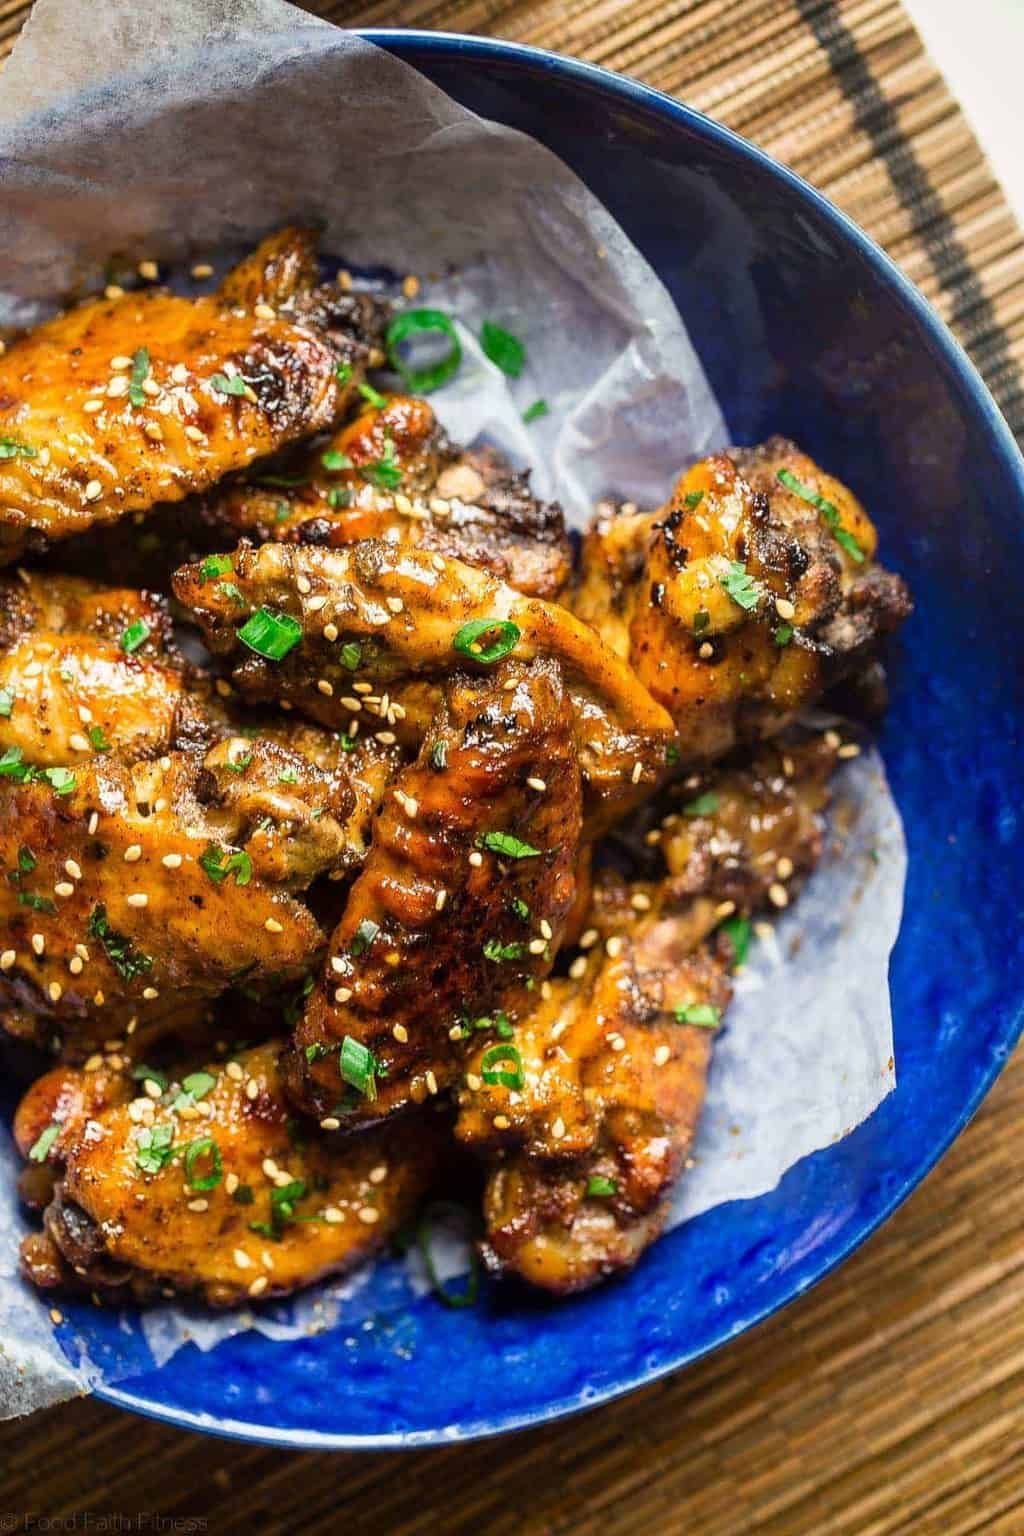 Sticky Slow Cooker Chicken Wings with Pineapple 5-Spice Sauce - Taylor from Food Faith Fitness